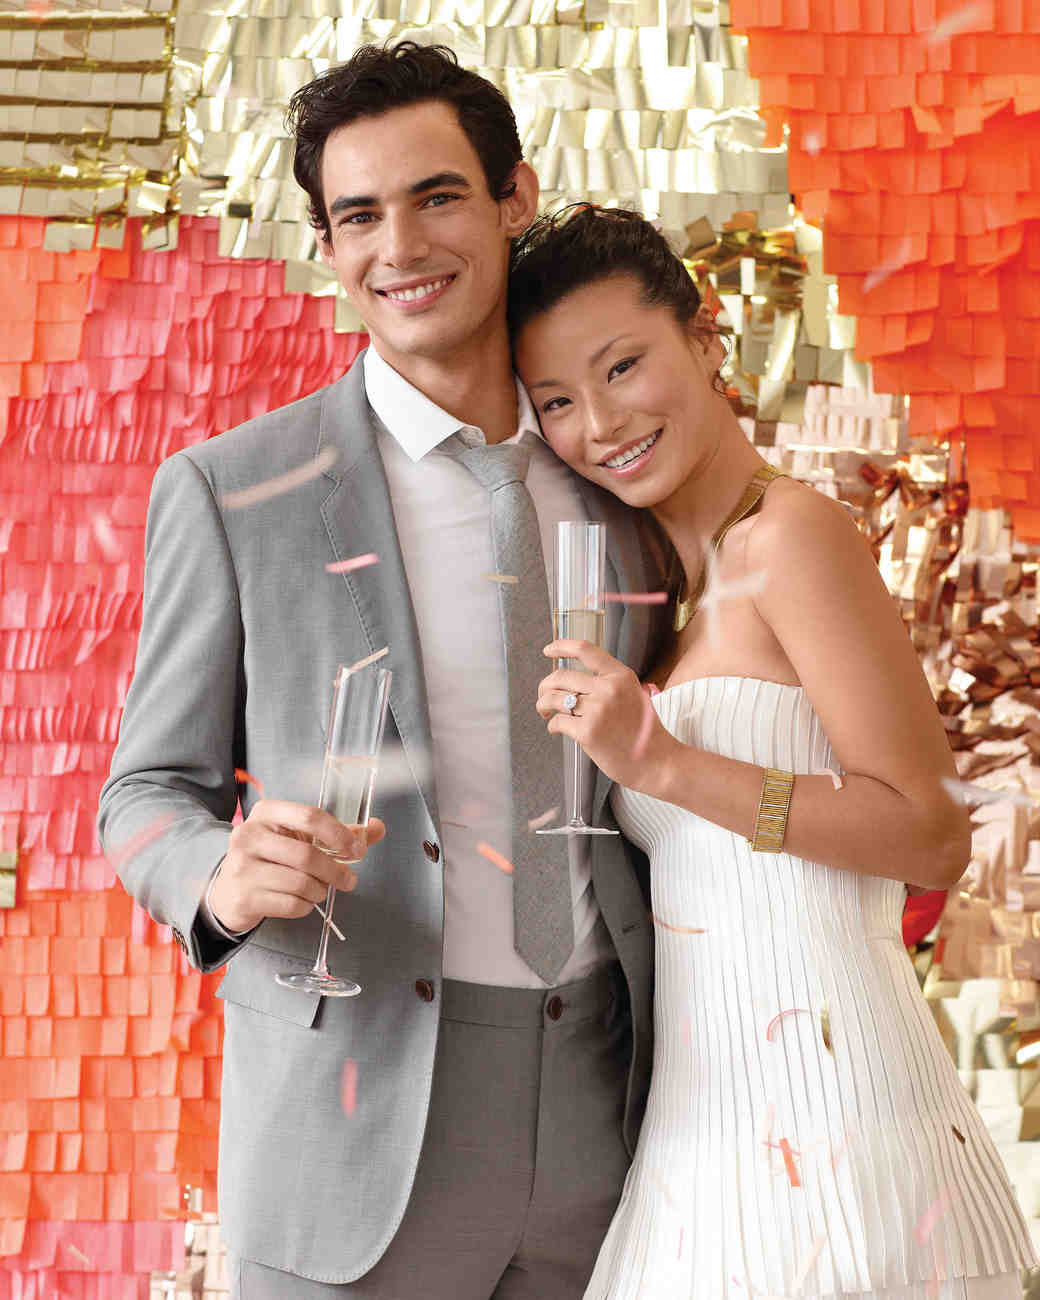 18 Diy Photo Booth Backdrops To Upgrade Your Wedding Reception